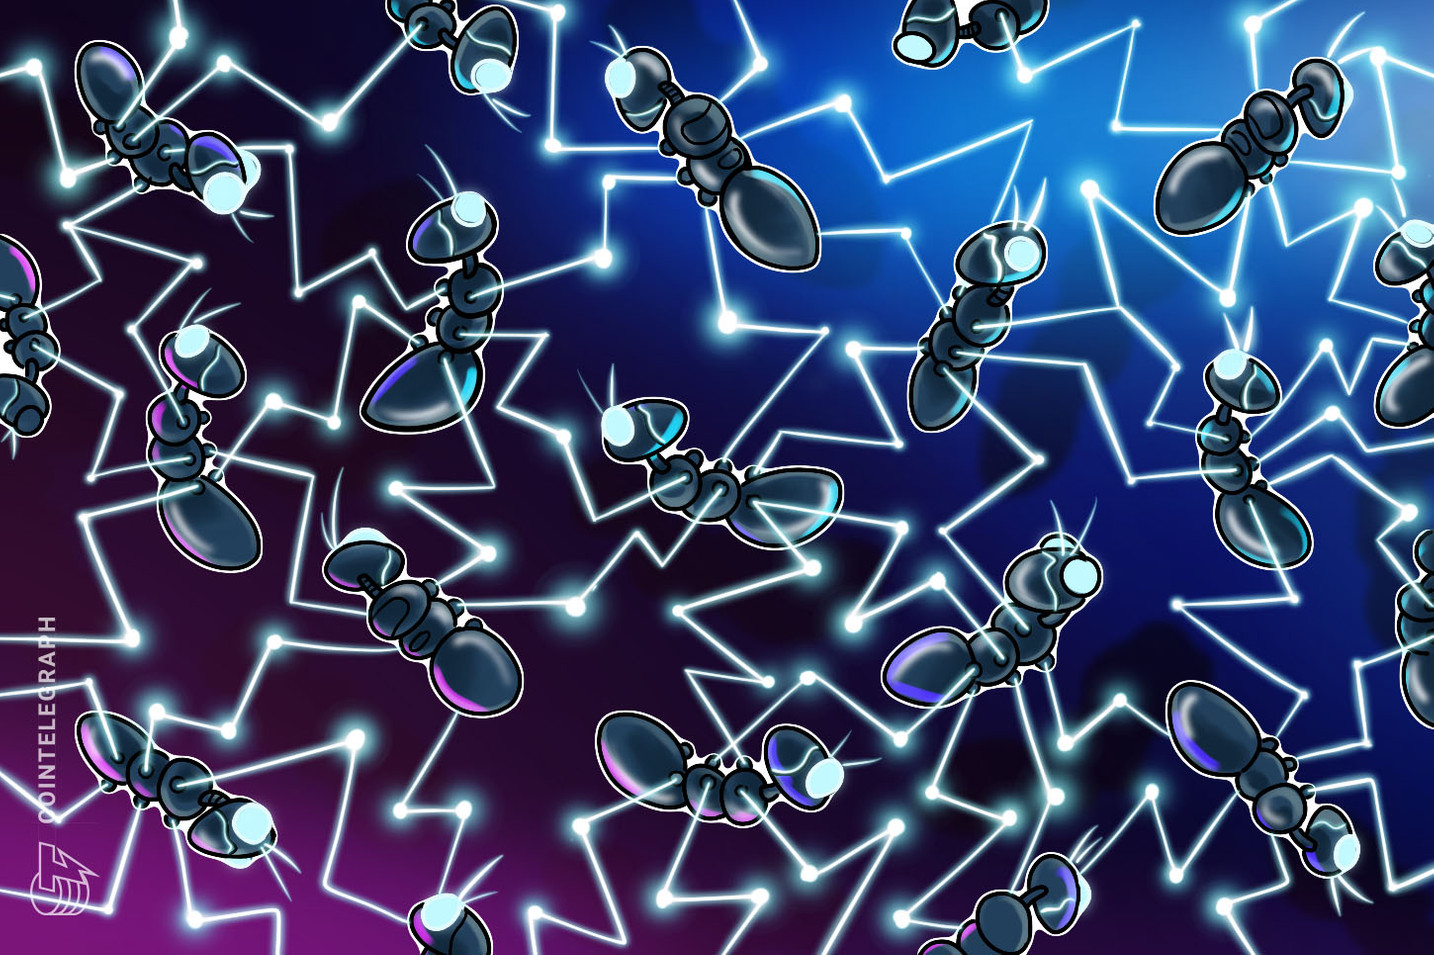 Blockchains Still Lack Interoperability for Enterprise Use, WEF Says